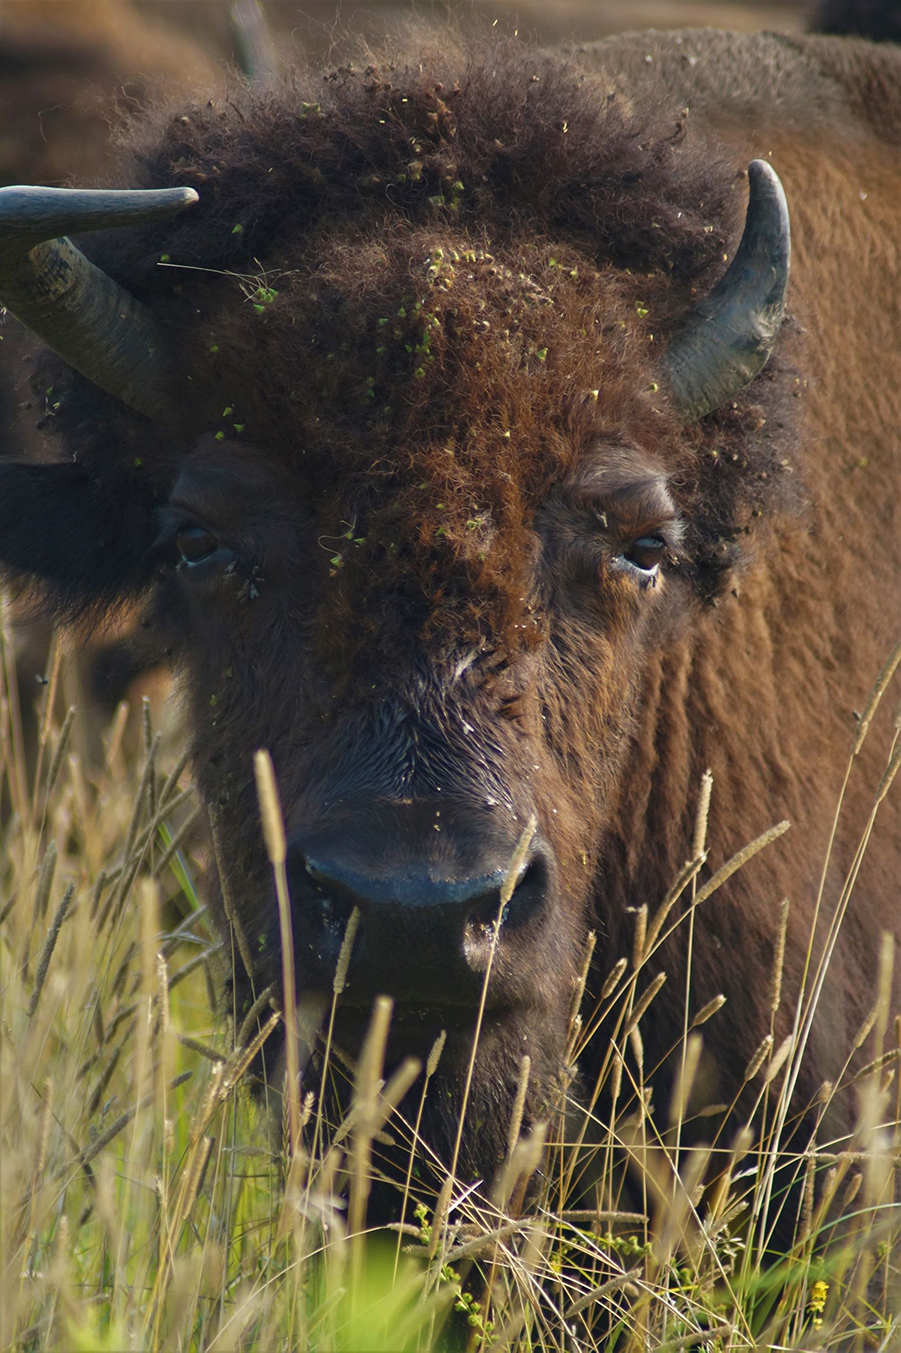 Bison looking at camera